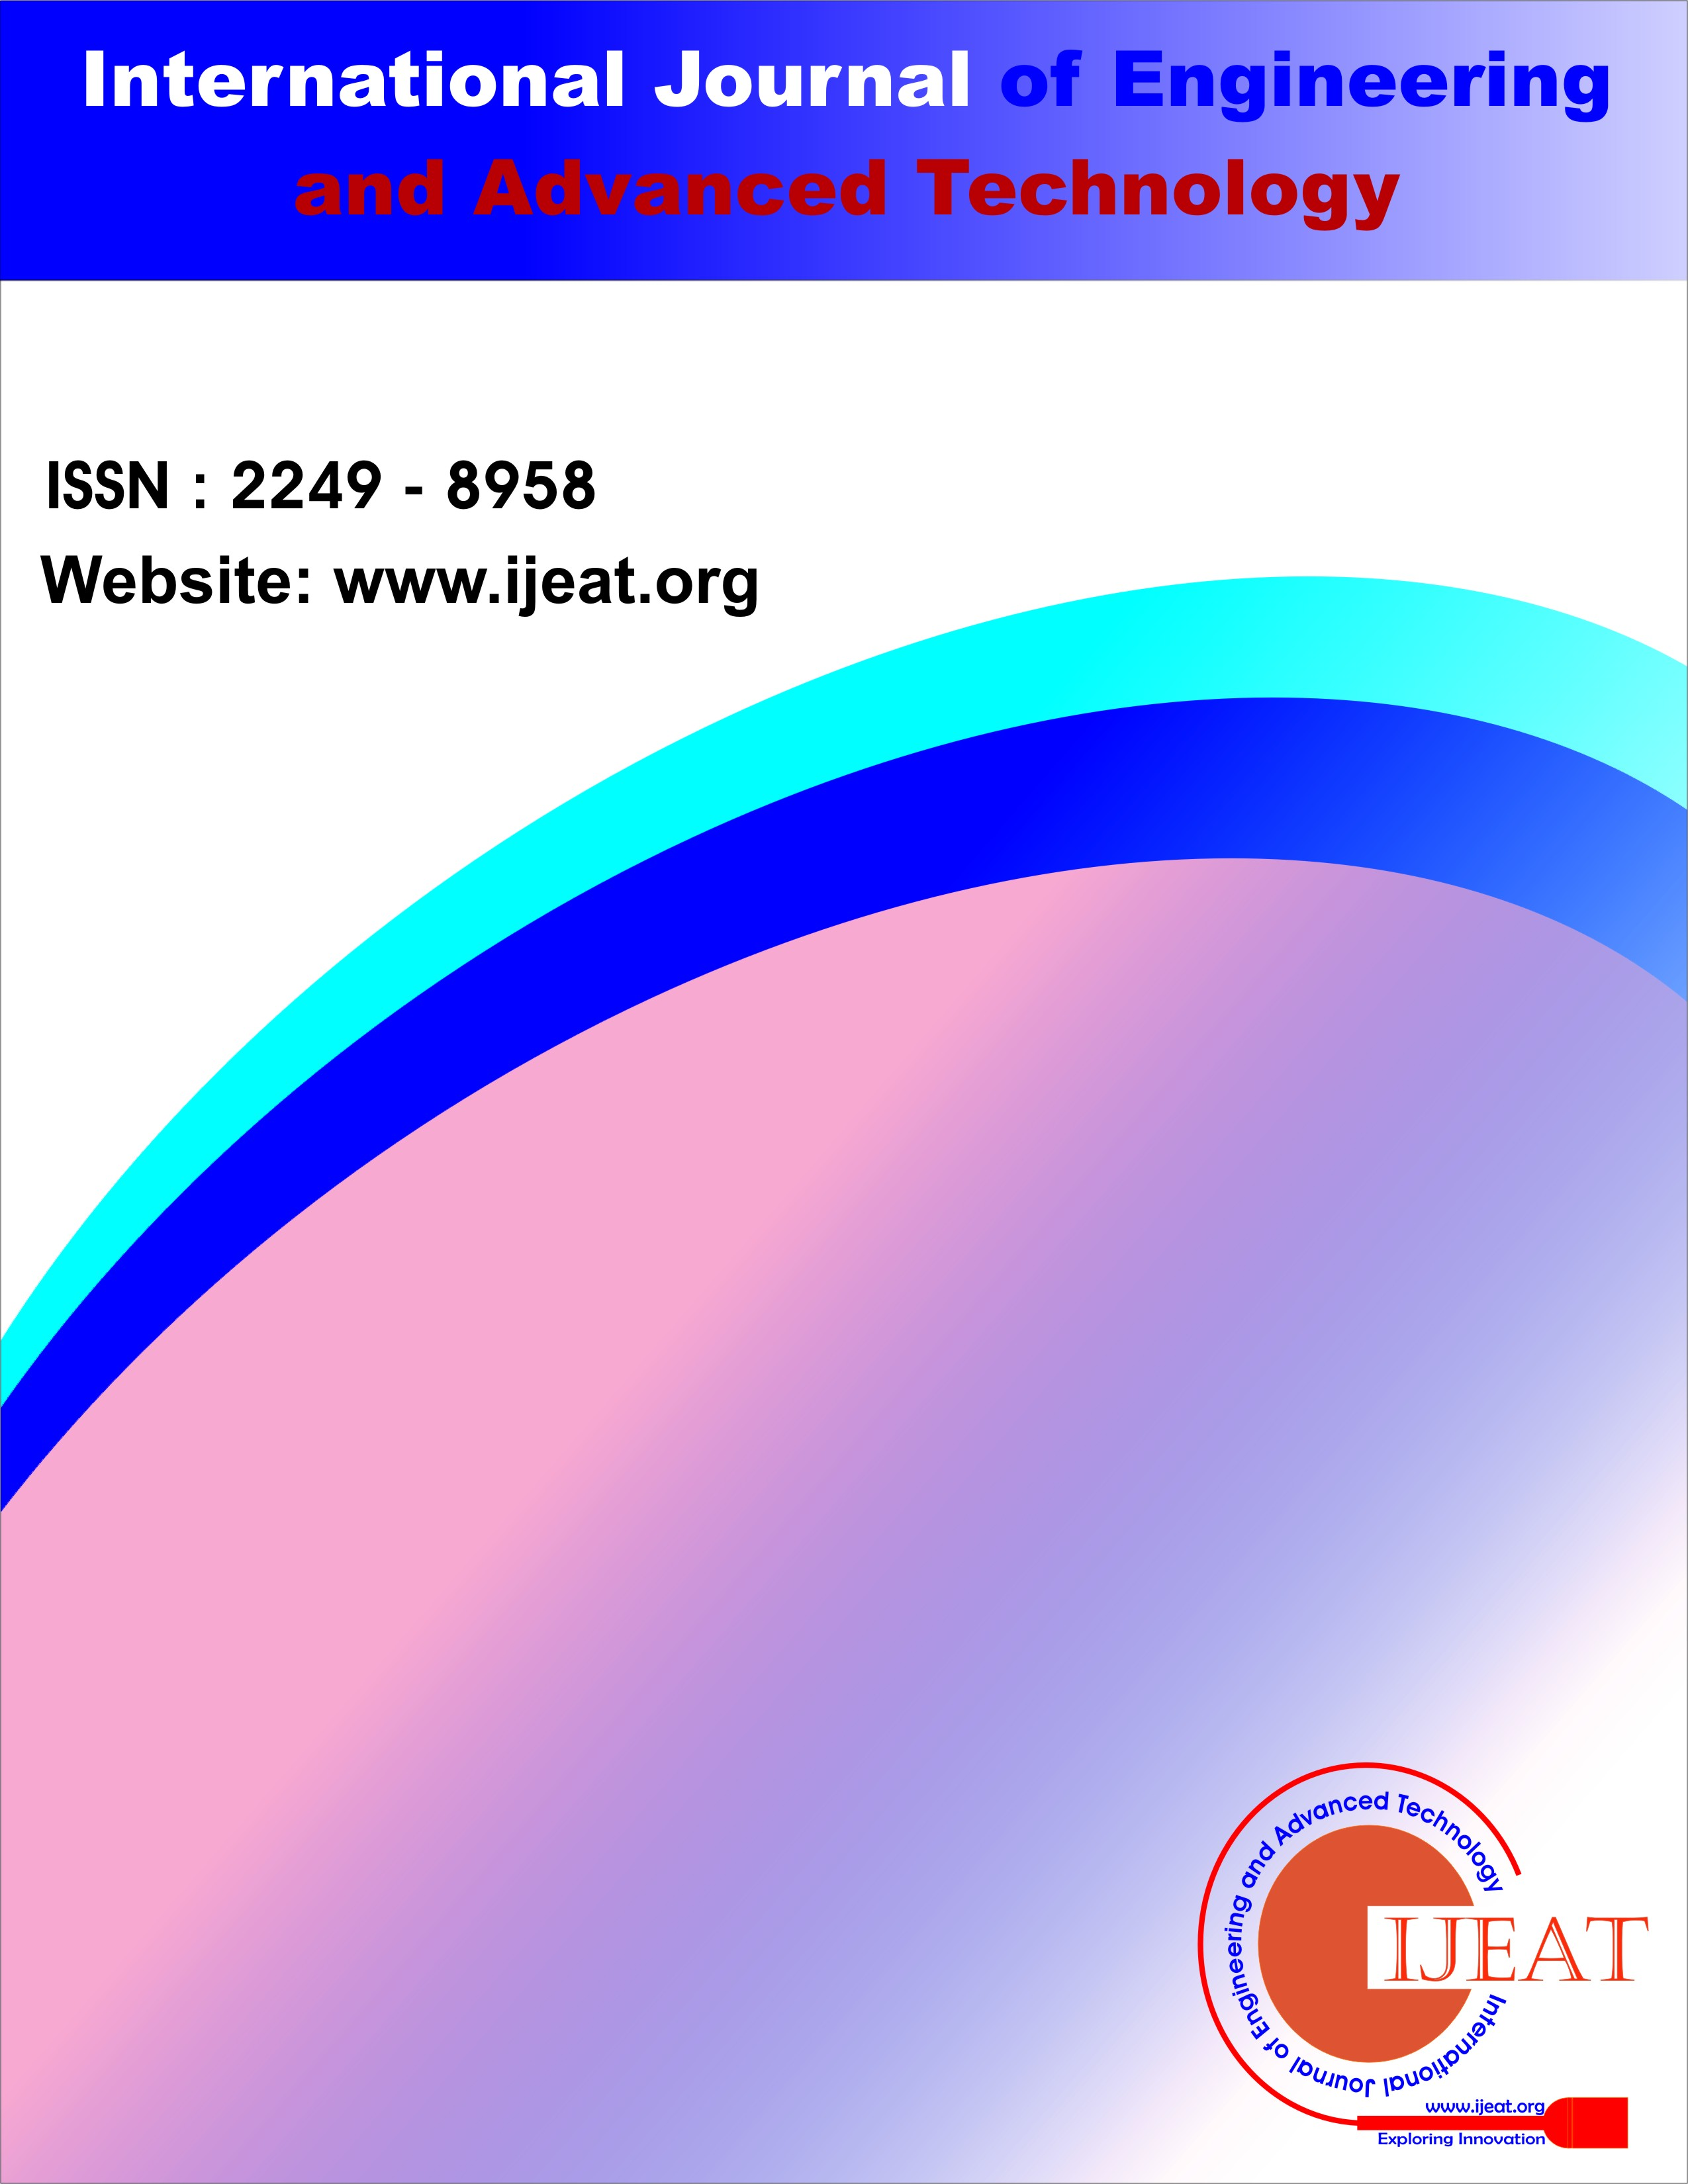 International journal of engineering and advanced technology ijeat is having issn 2249 8958 online bi monthly international journal being published in